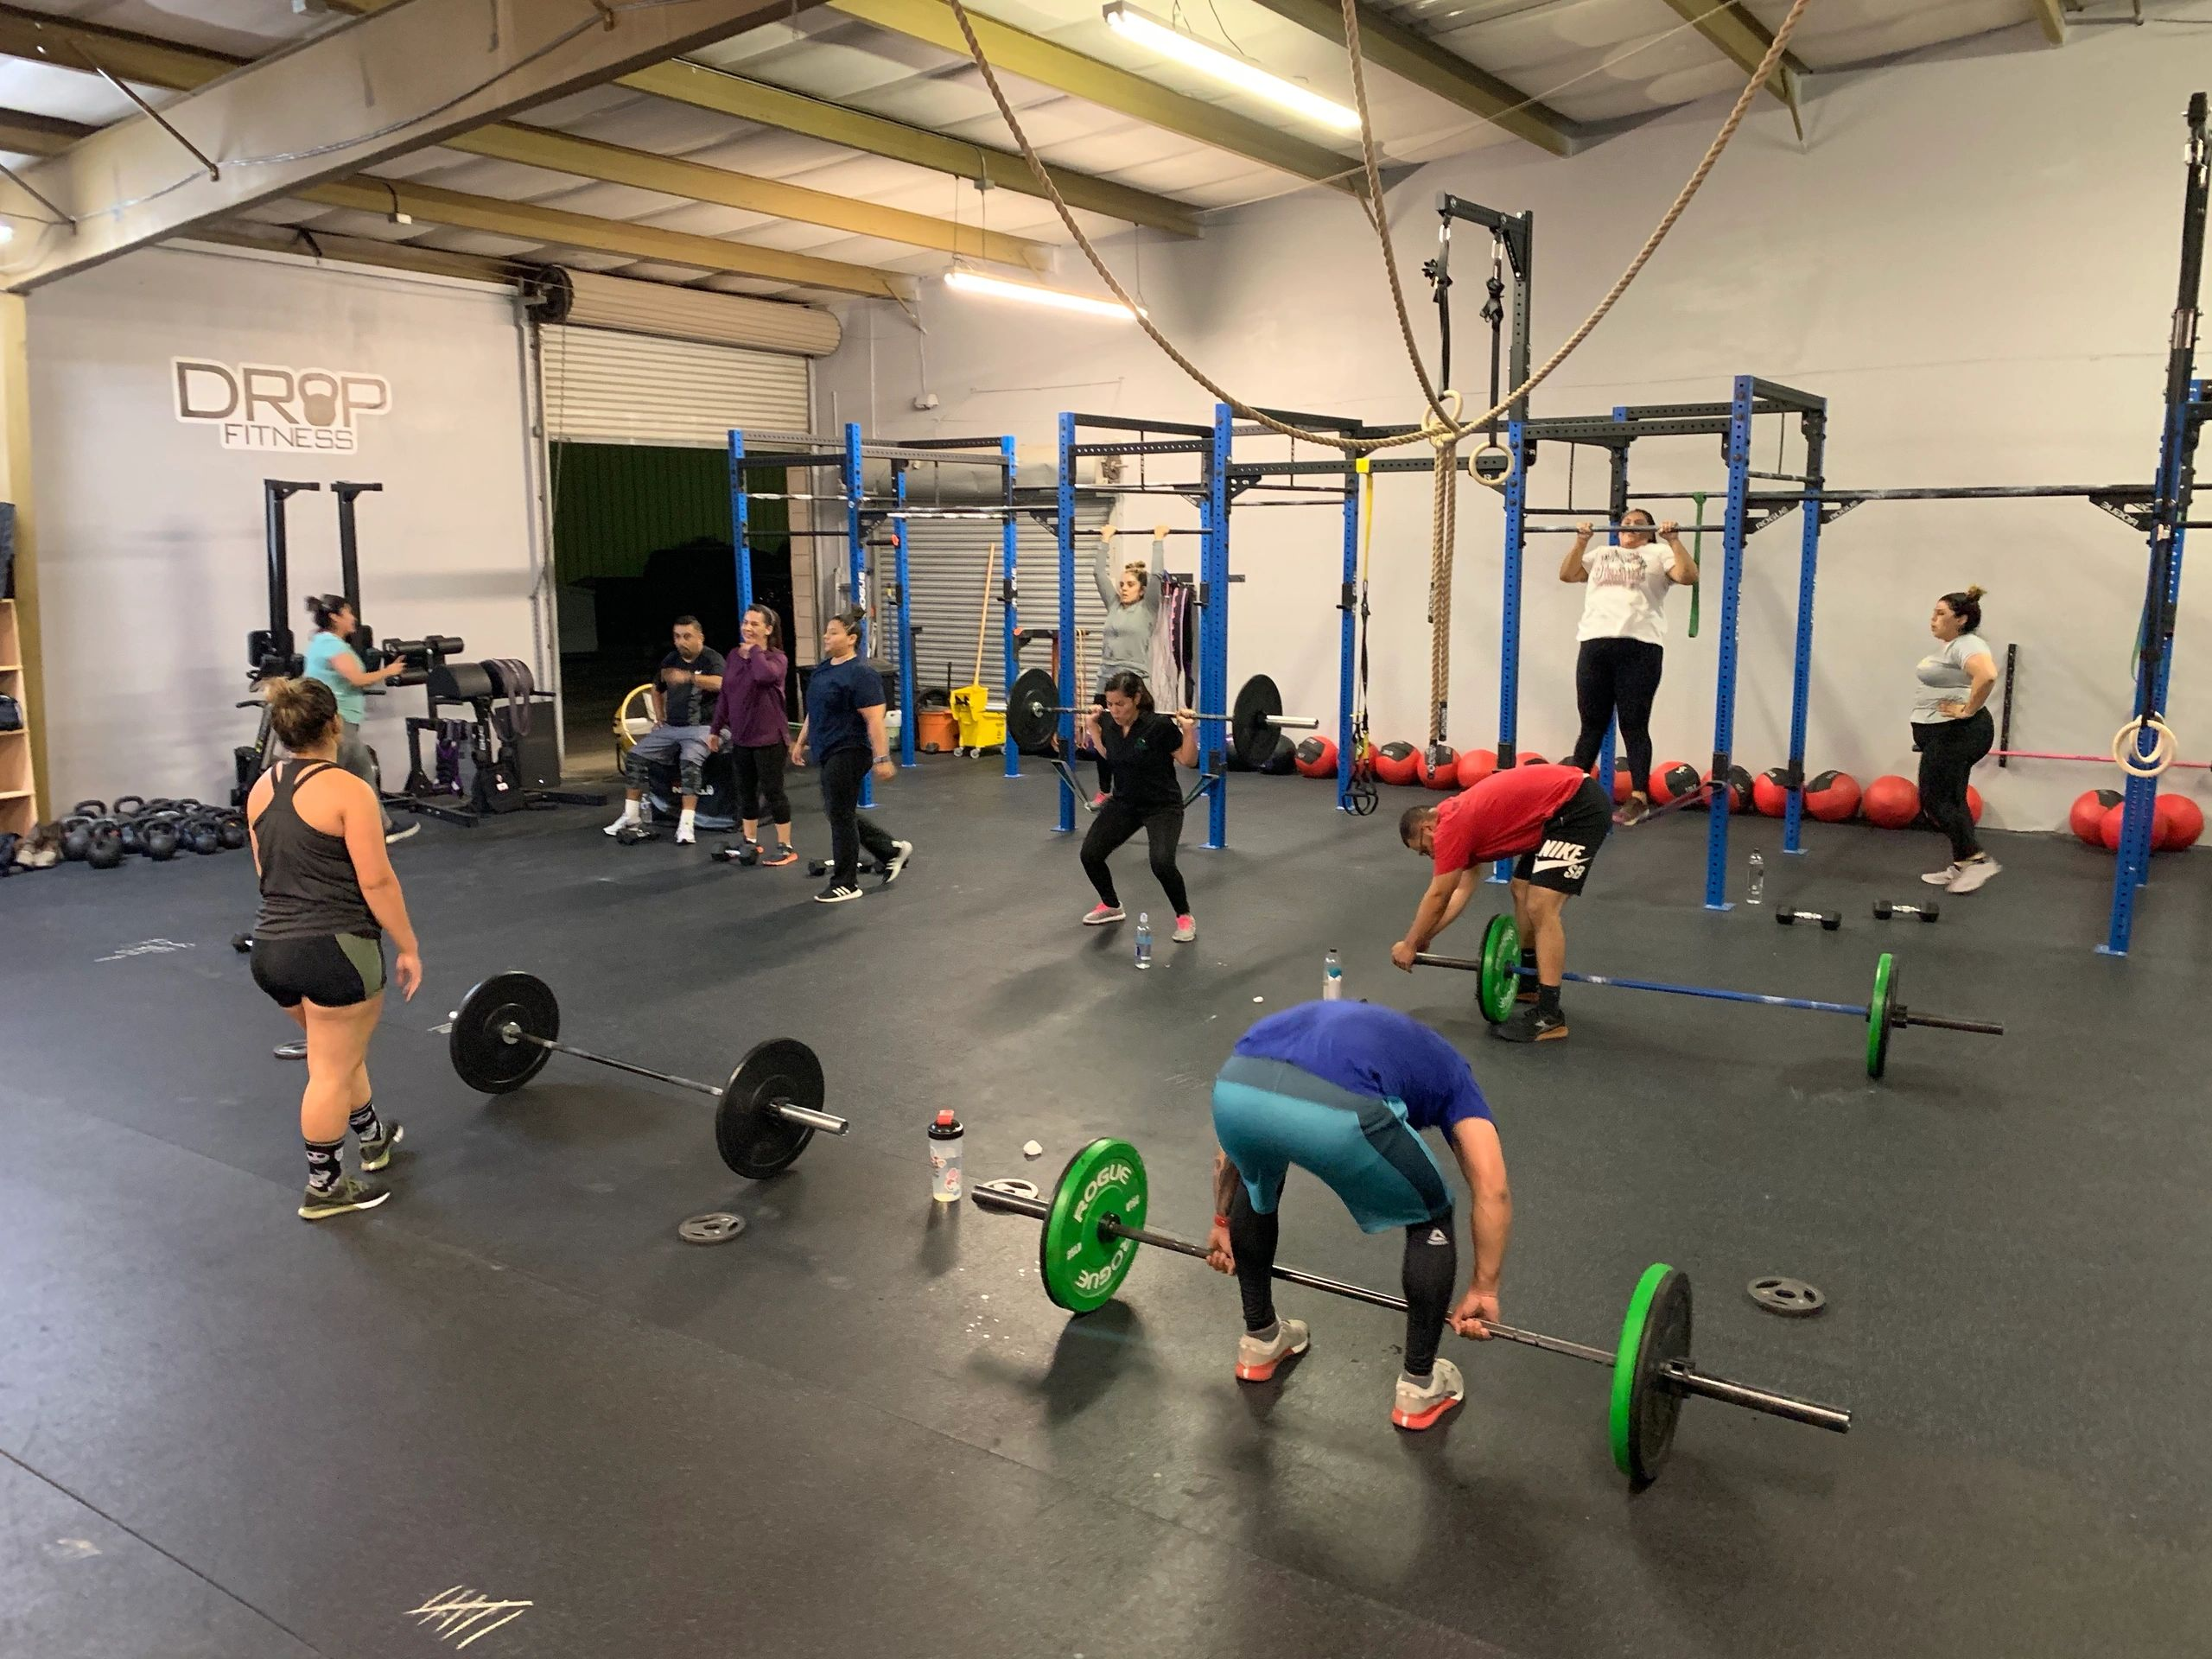 Drop Fitness Gym Boot Camp Work Out Studio